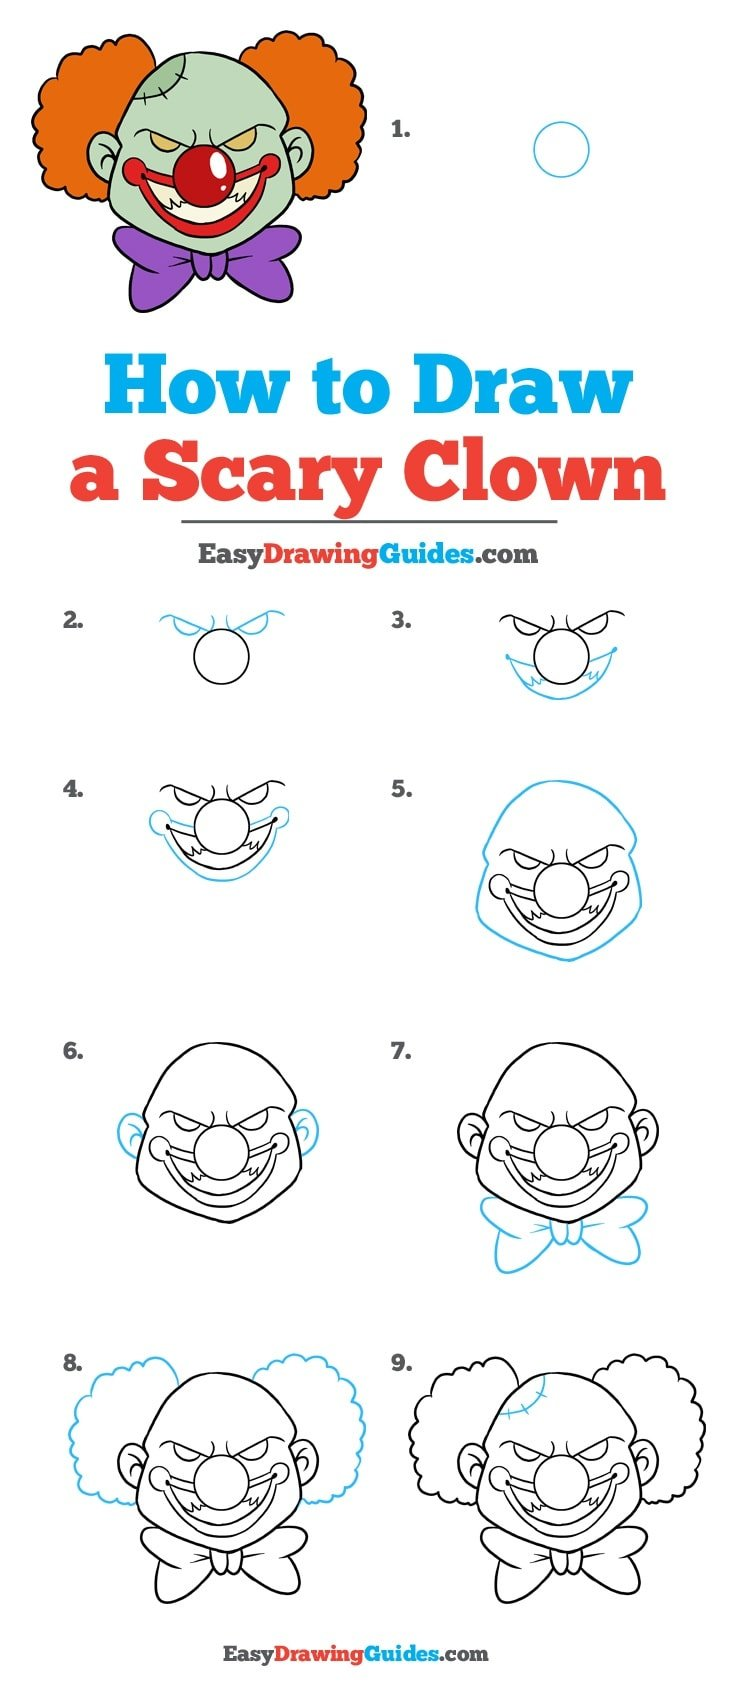 Scary Clown Drawing: Really Easy Drawing Tutorial